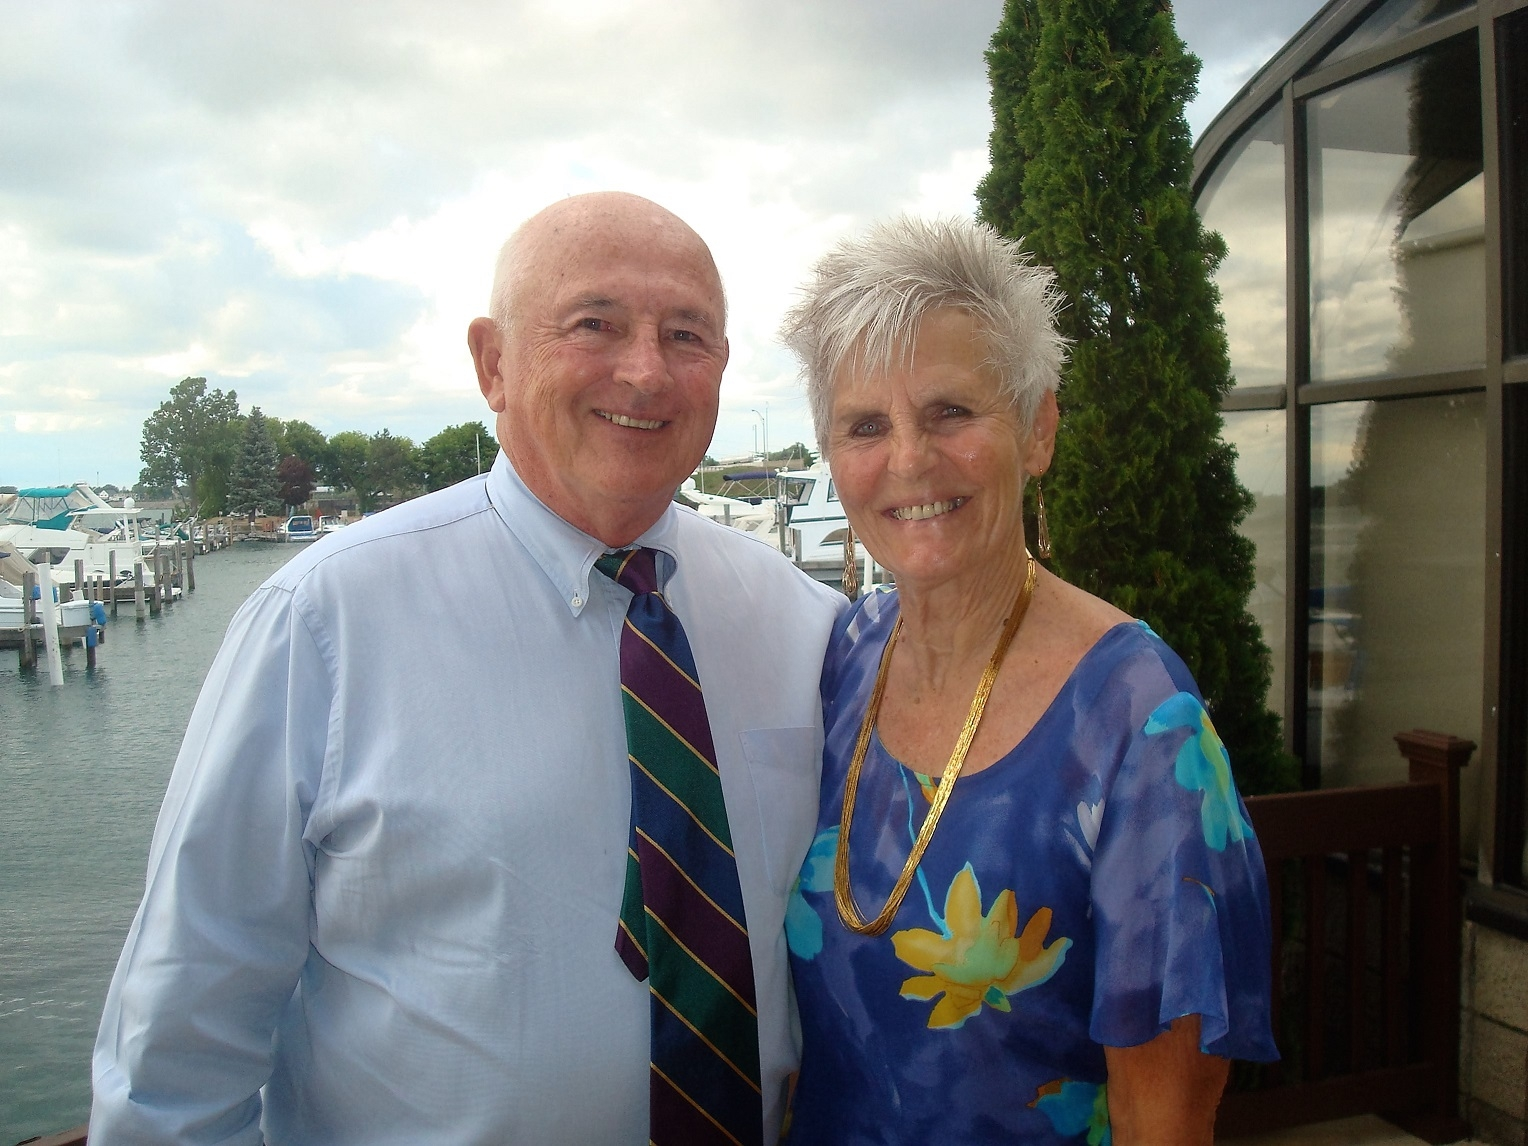 Jerry and Cindy Pequeen celebrate their 50th anniversary